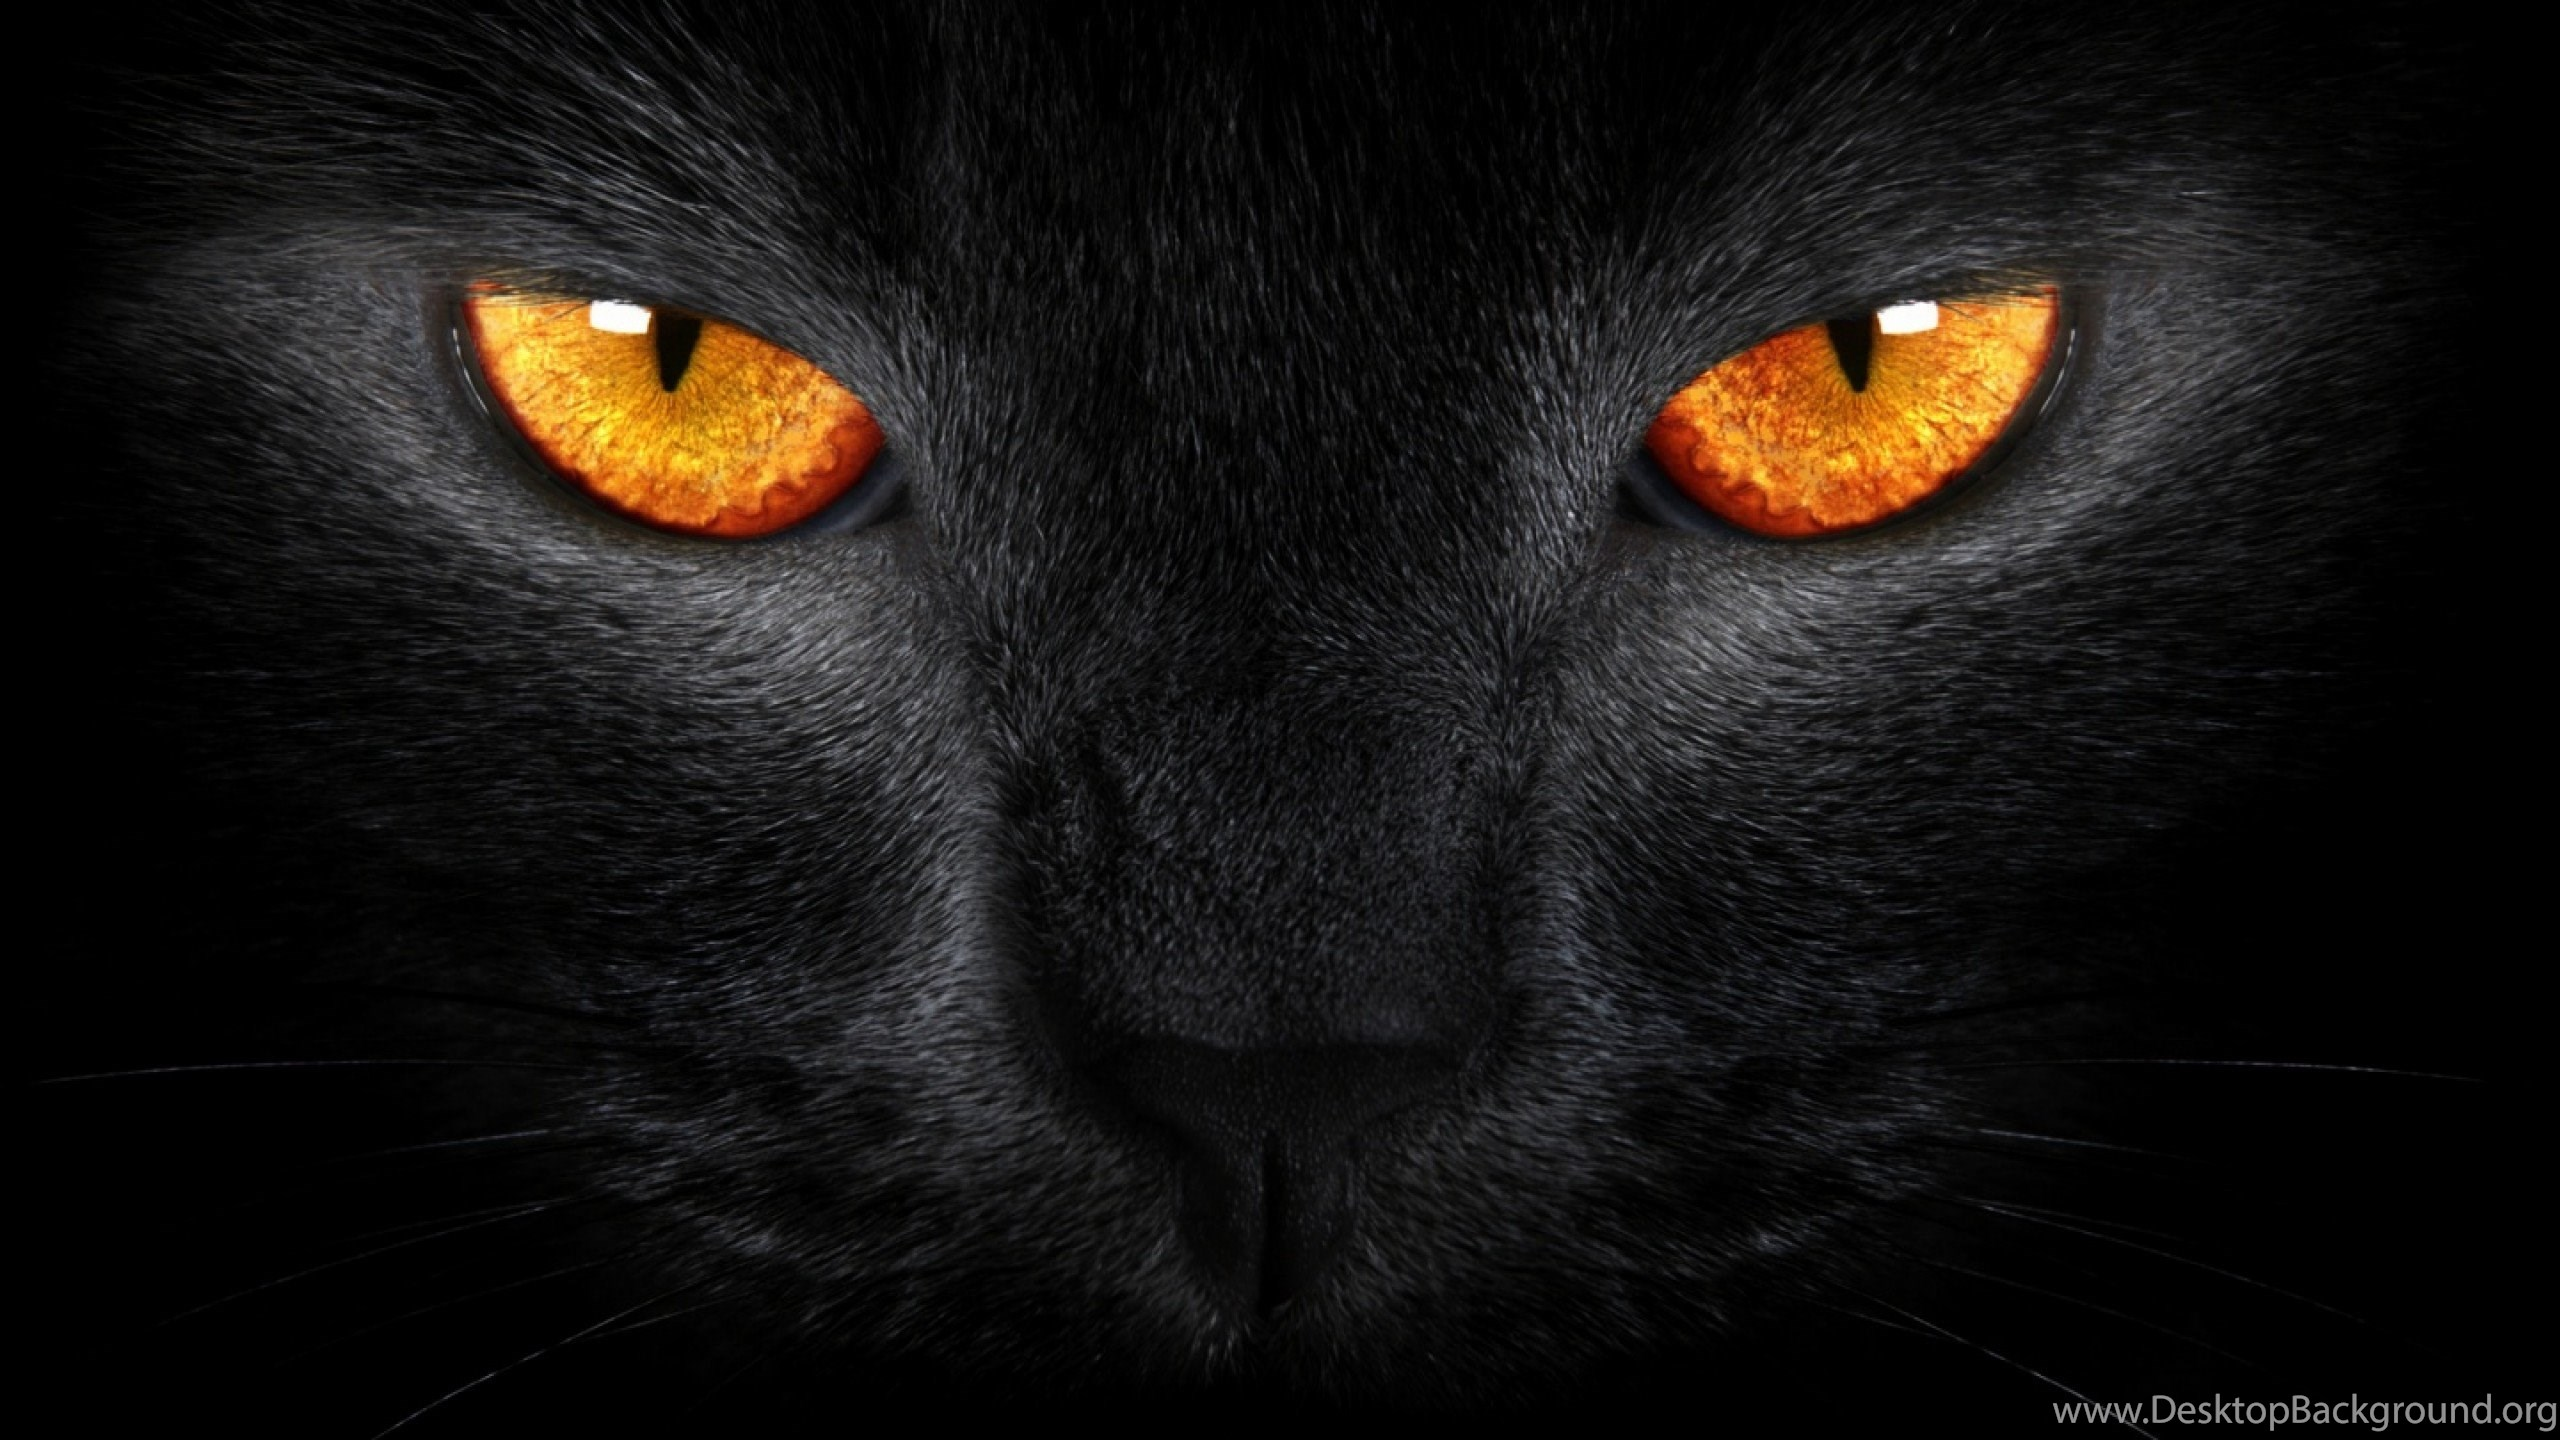 Wallpapers tiger eye homepage cat black orange eyes 2560x1440 netbook voltagebd Choice Image